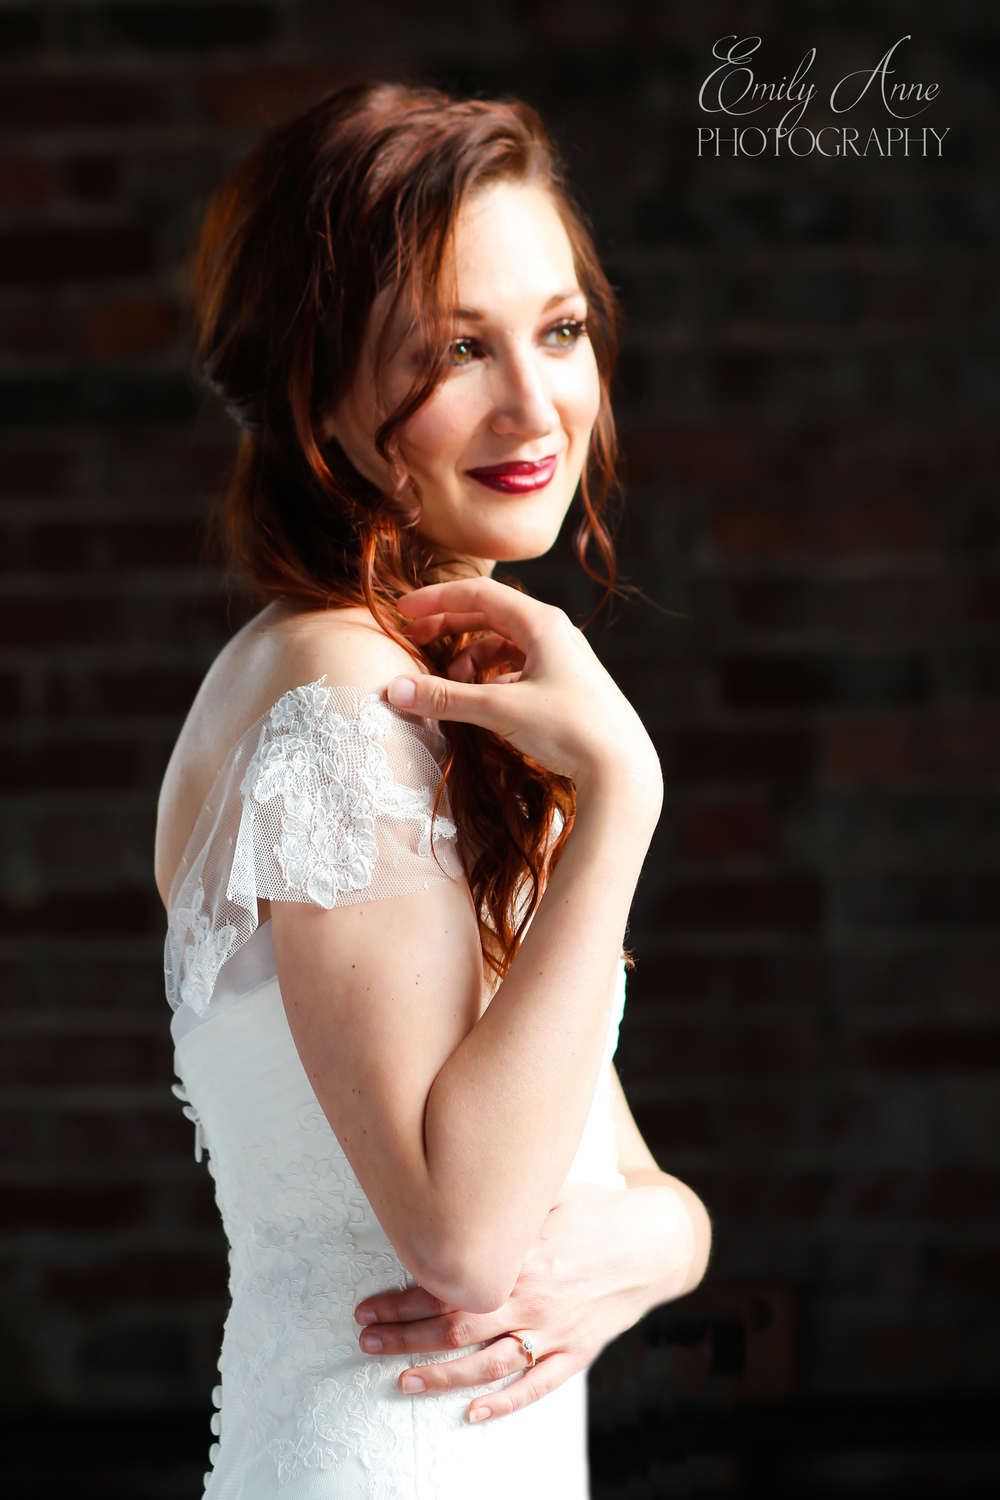 emilyannephotographynashvillebride.jpg top affordable nashville wedding photographer emily anne photography nashville marathon village photoshoot the best bridal portraits in tennessee nashville portrait photographer emily anne photo art